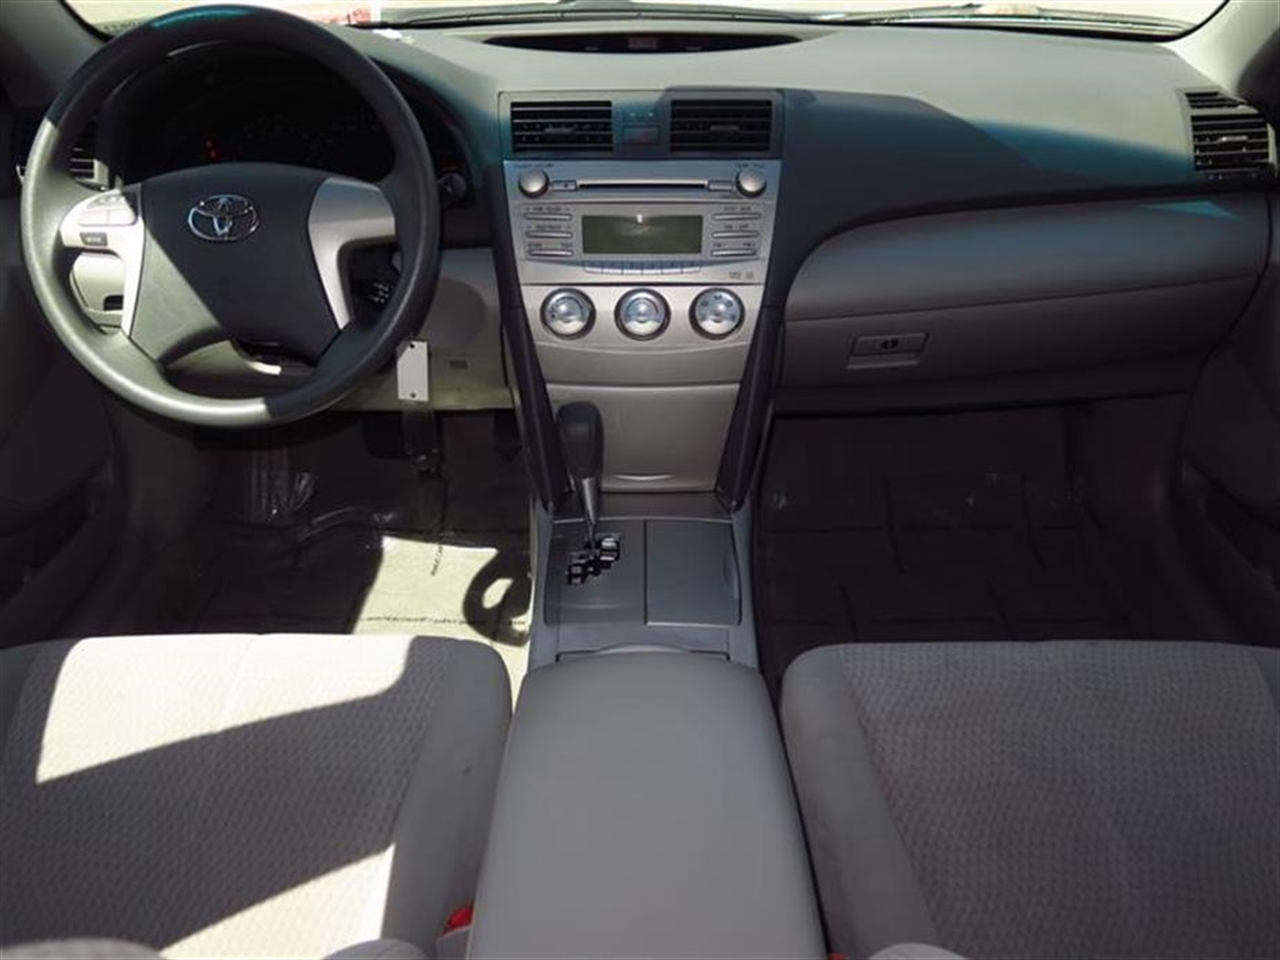 2011 TOYOTA CAMRY 4dr Sdn I4 Auto LE 50863 miles 2 12V aux pwr outlets 6040 split-folding lo